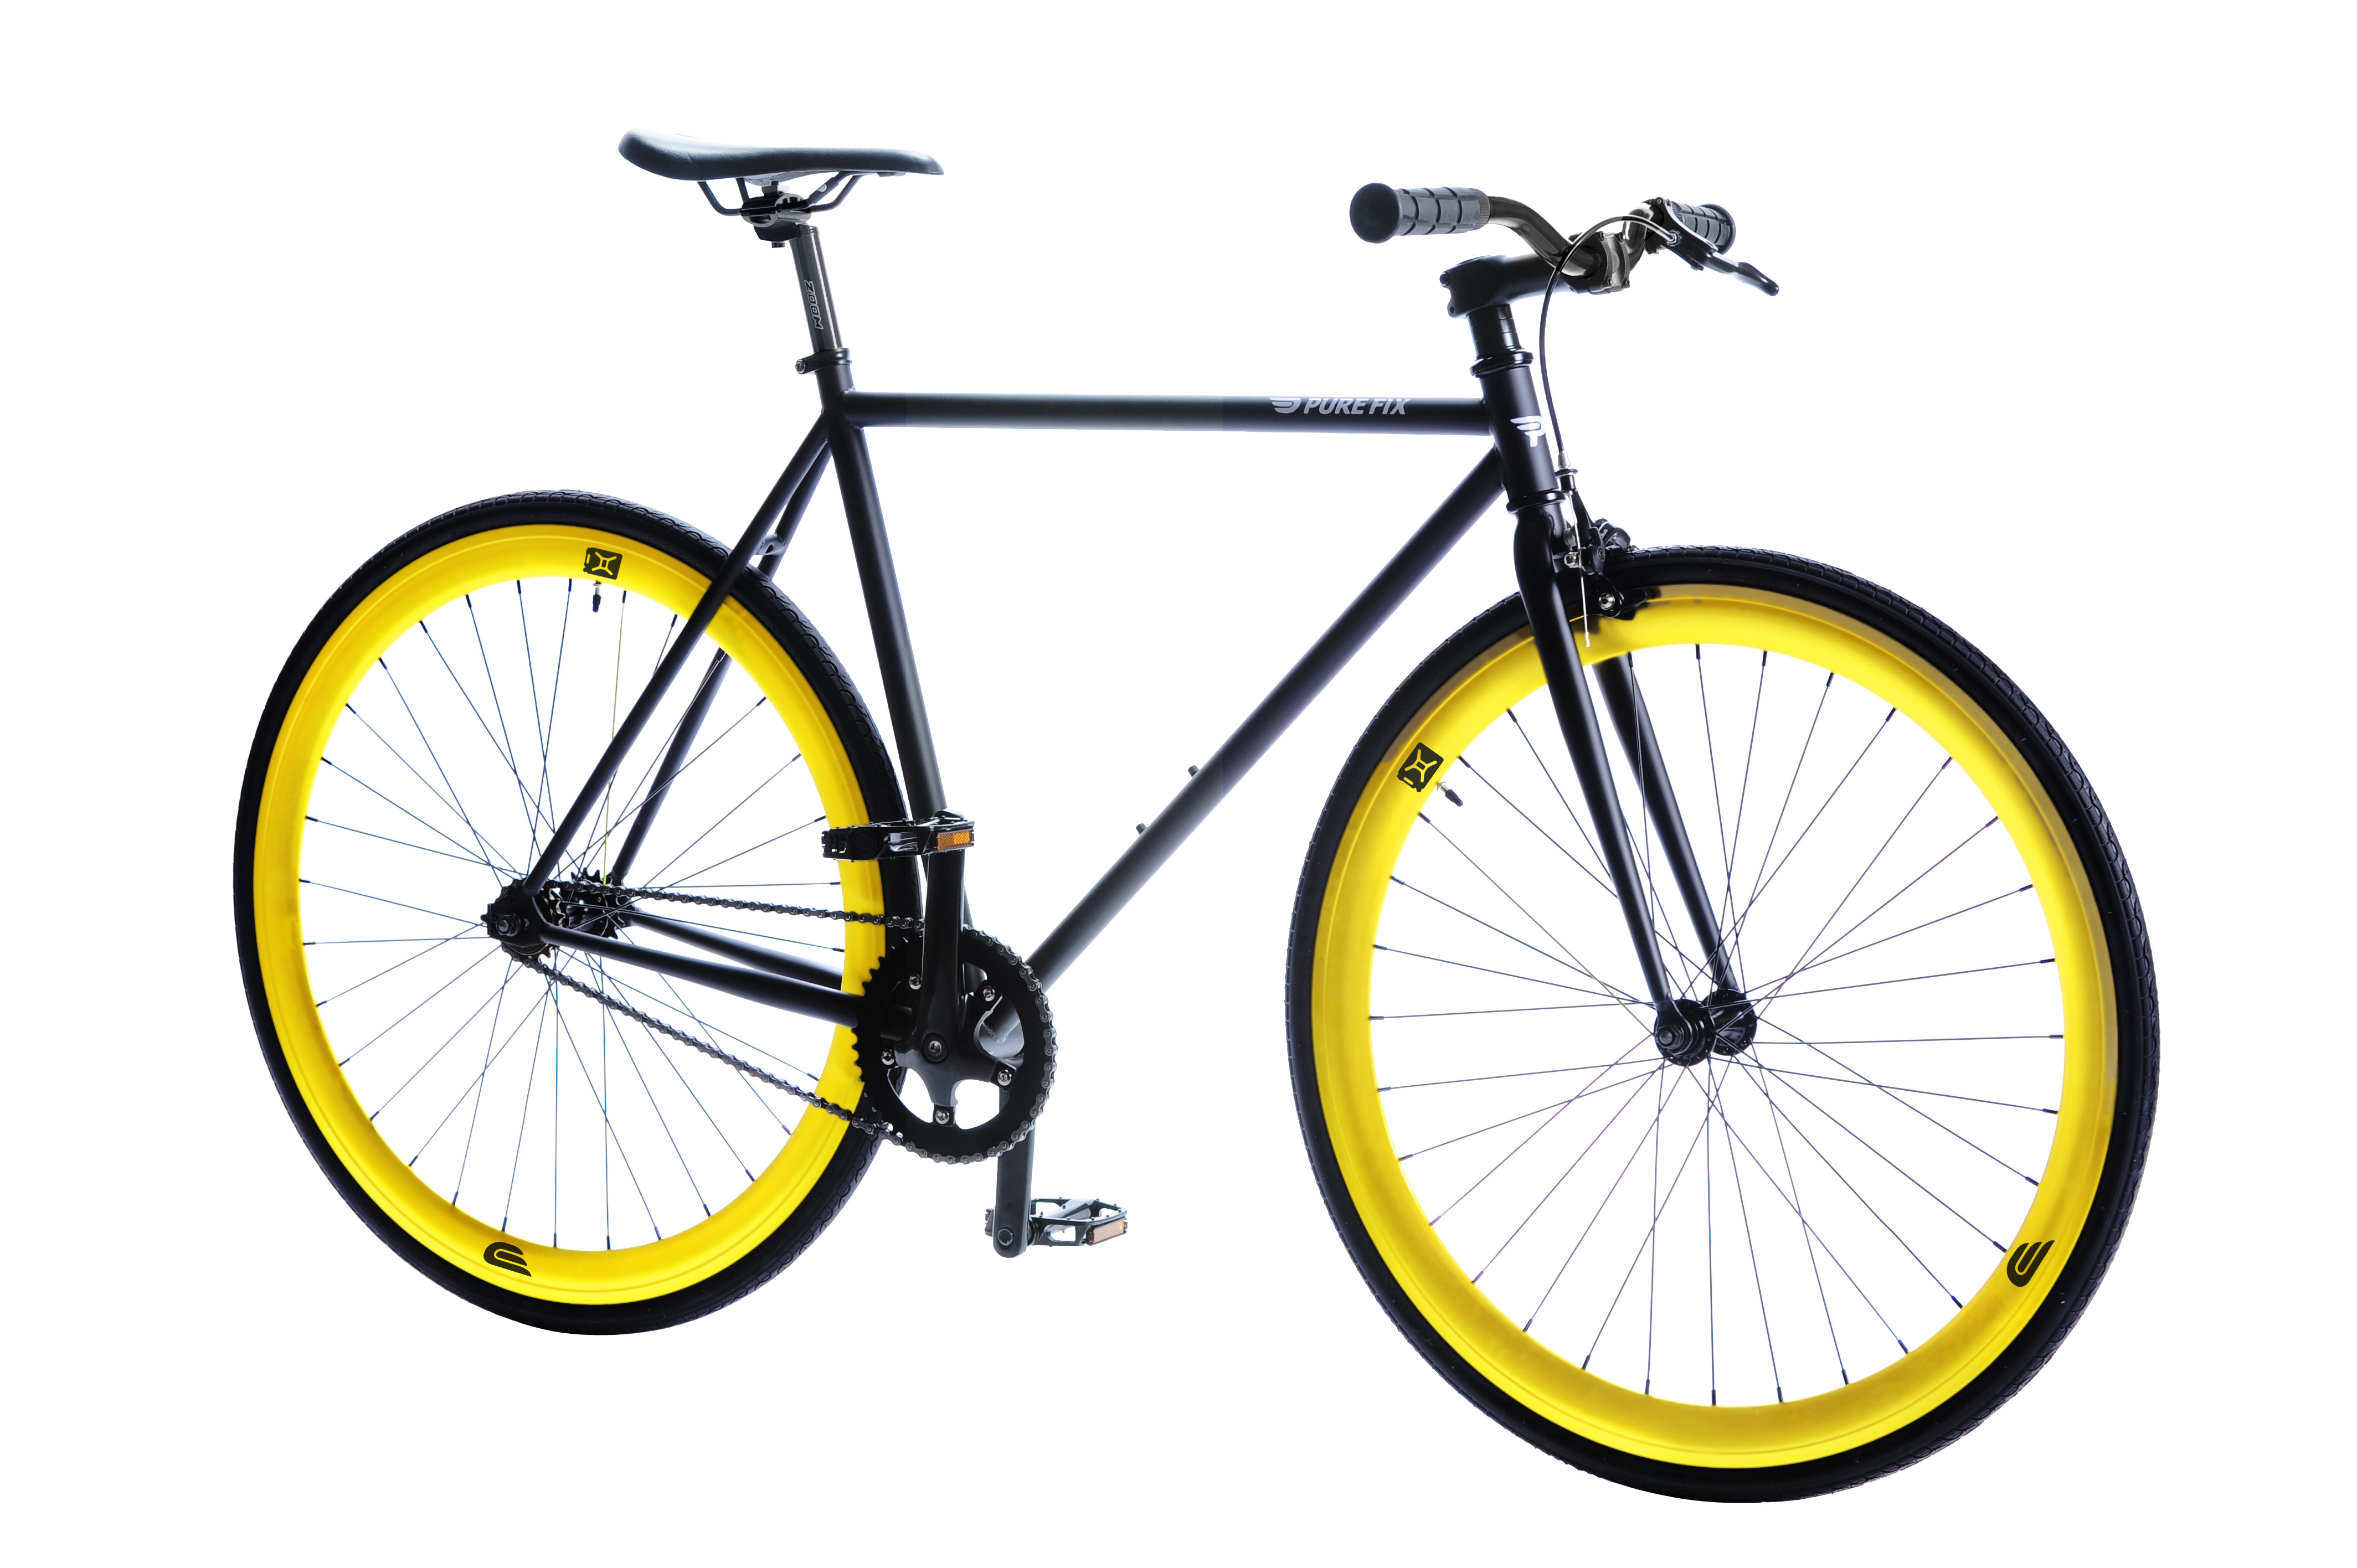 Spin Bikes For Sale >> Sales of special edition Pure Fix bikes benefit water charity | Bicycle Retailer and Industry News